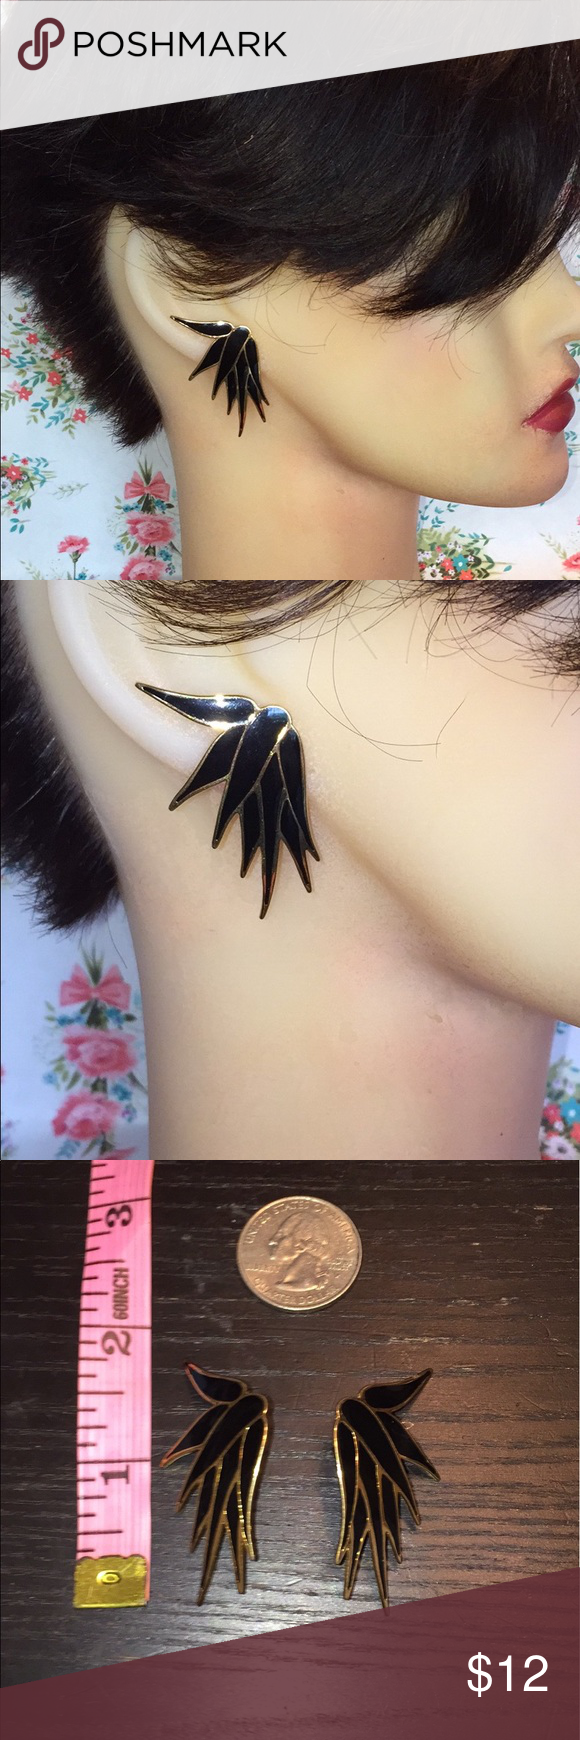 Vintage 80s earrings L Bott black gold spike Ladies had such a fun earrings and these are no exception. Gold and black spiked pierced earrings large or size studs signed L Bot. Perfect condition. Vintage Jewelry Earrings